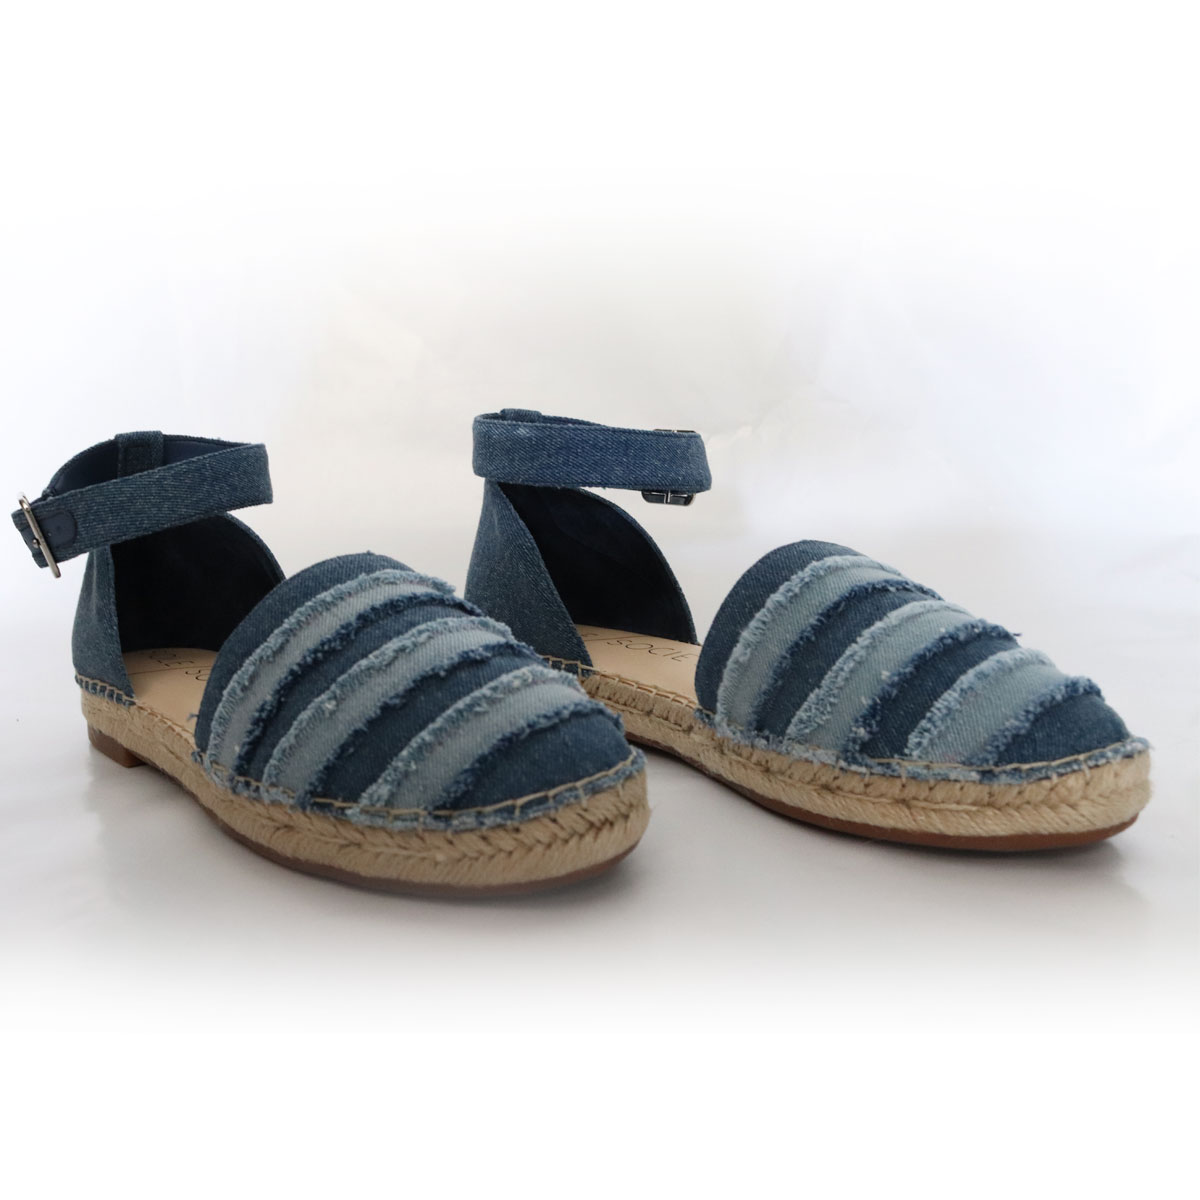 Sole Society Blue Denim Espadrilles New Items